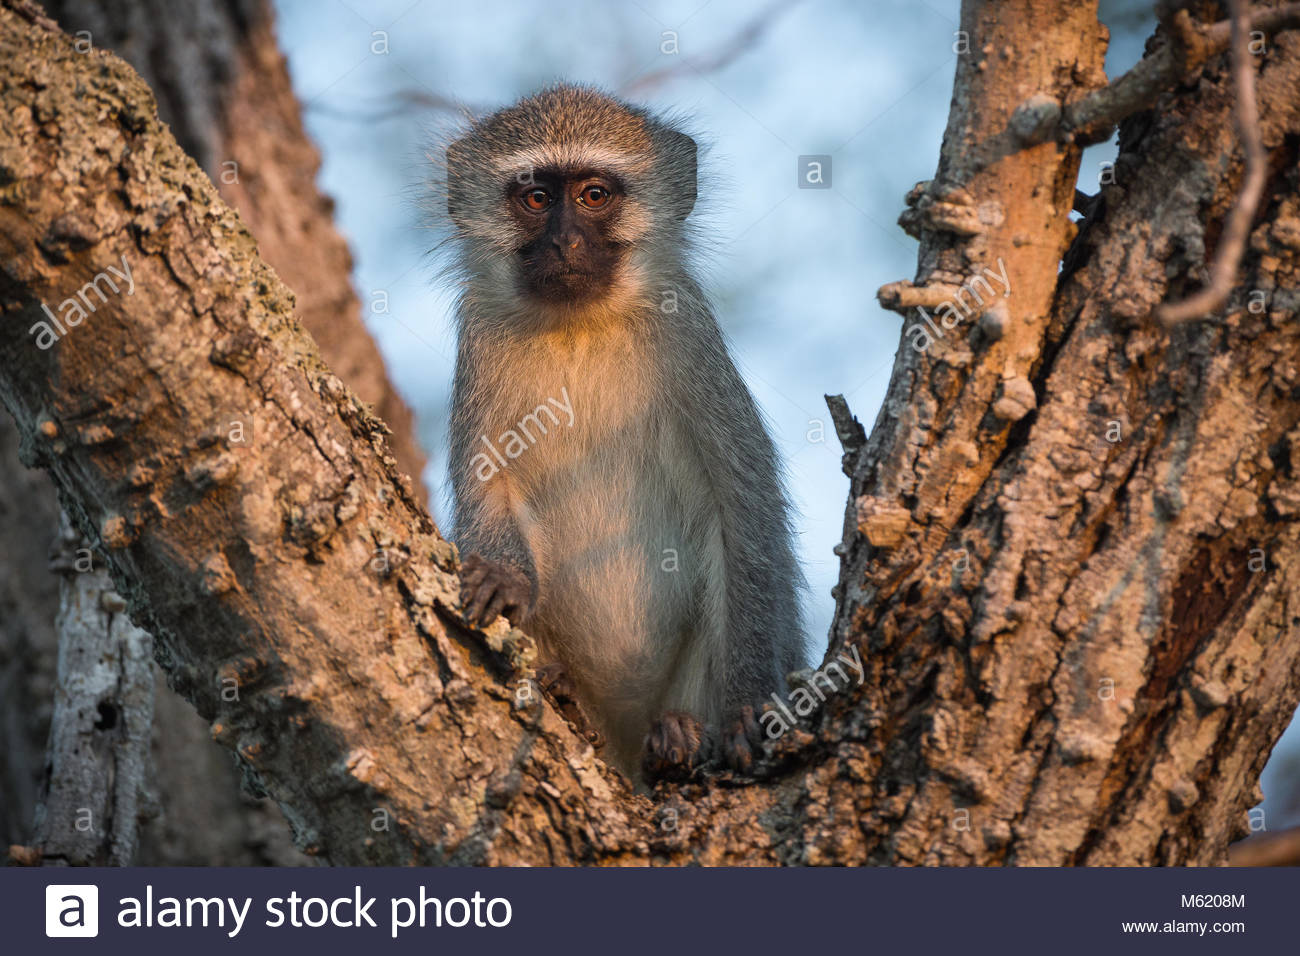 A Vervet monkey, Chlorocebus pygerythrus, in warm evening light in a tree. - Stock Image